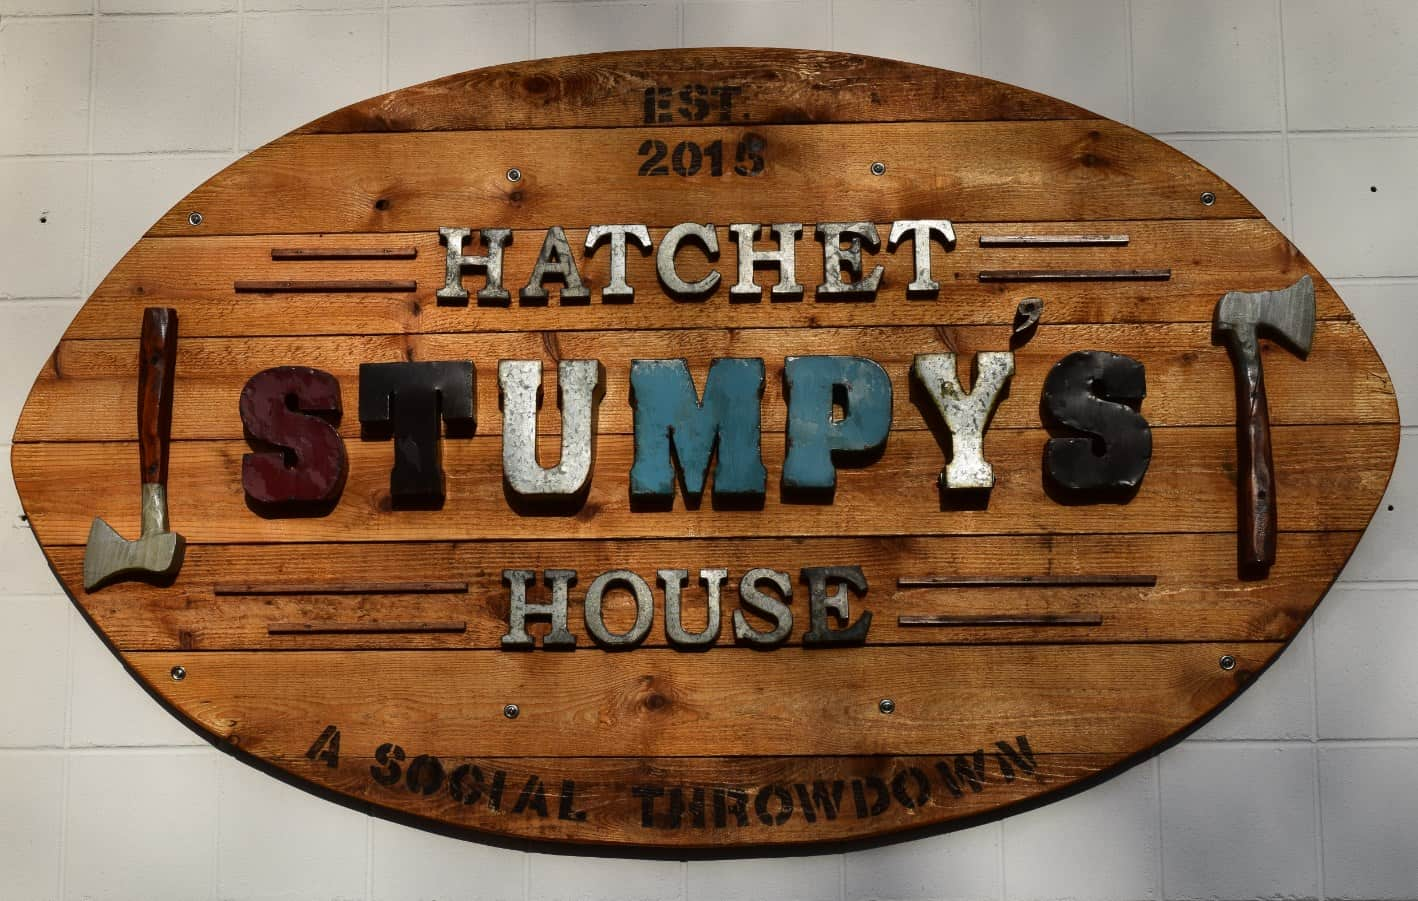 Stumpys HatchetHouse NJ review.